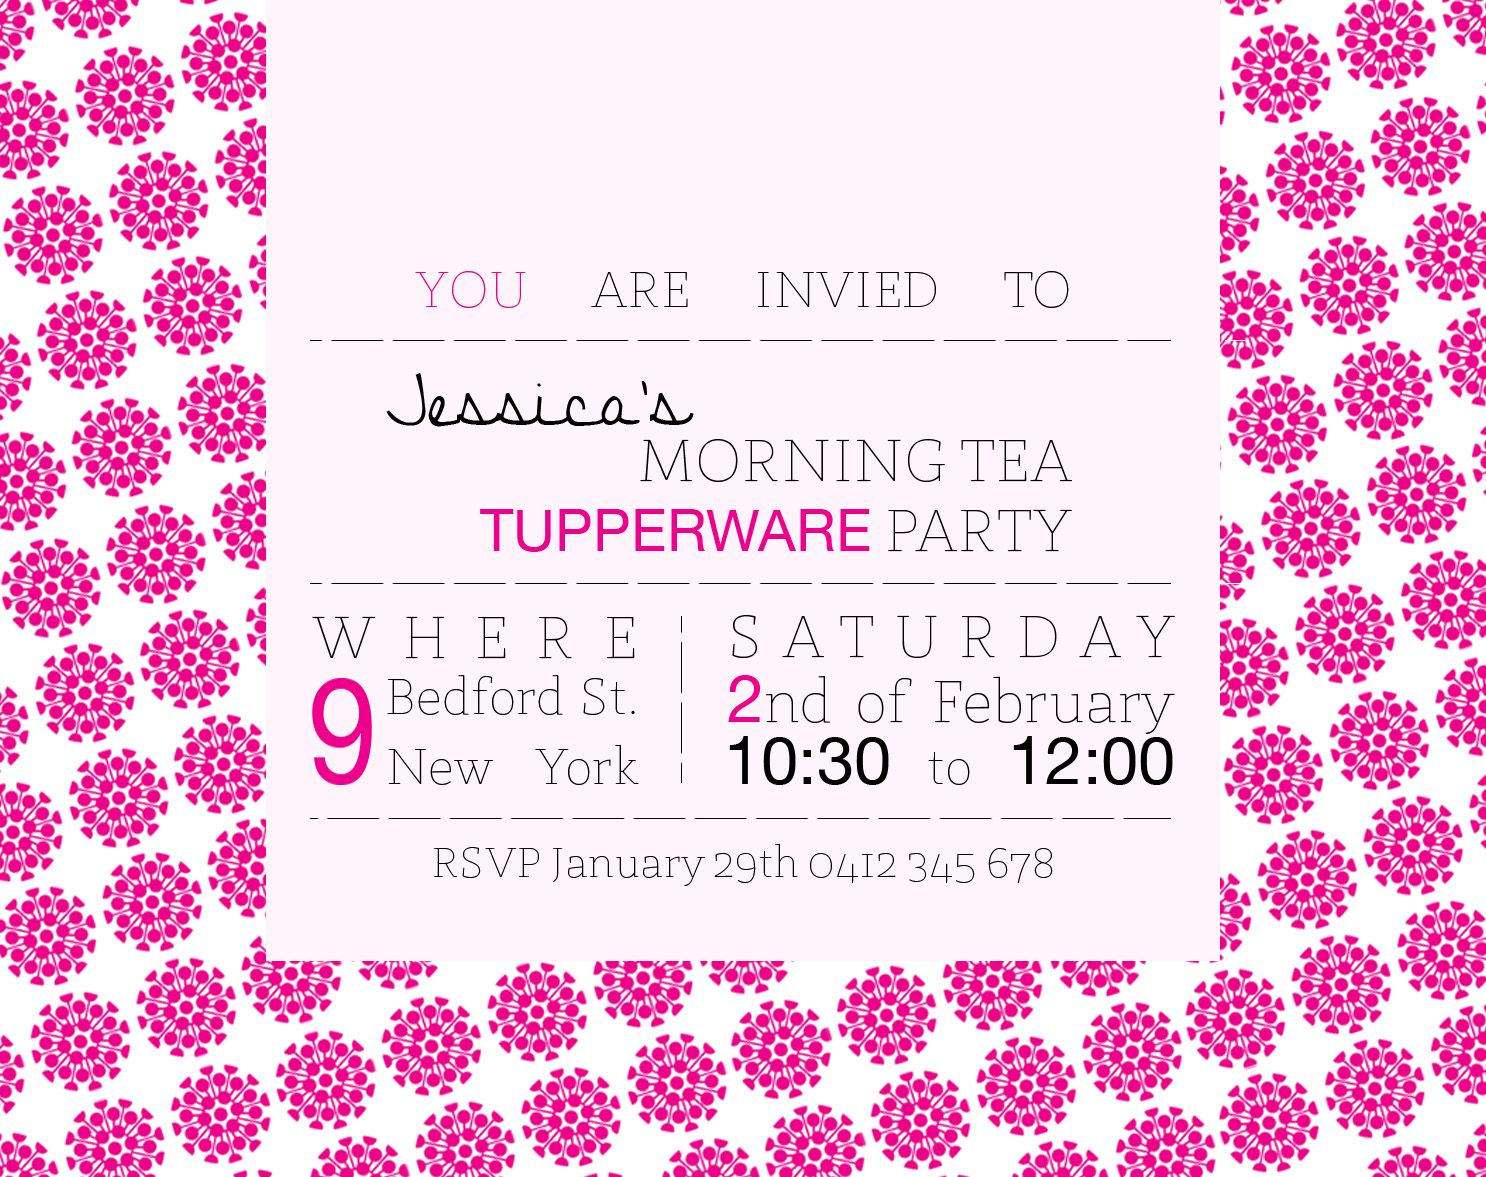 Tupperware Party Invitation Fonts Used St Marie Helvetica Neue